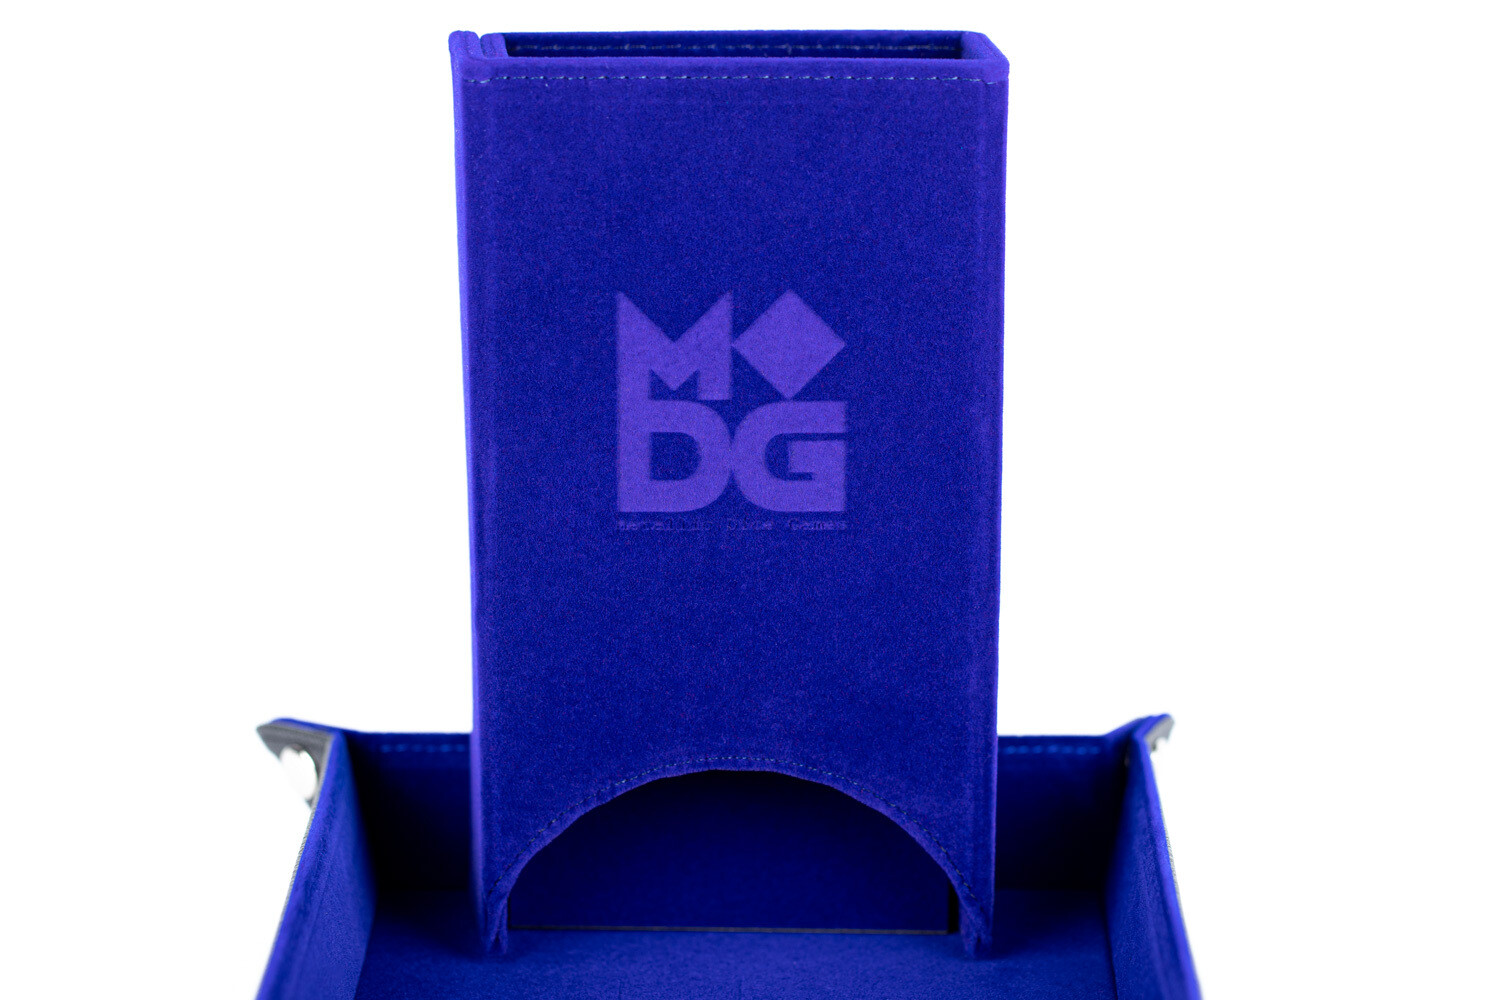 Fold Up Dice Tower For Polyhedral Gaming Dice RPG Role Play Blue Velvet